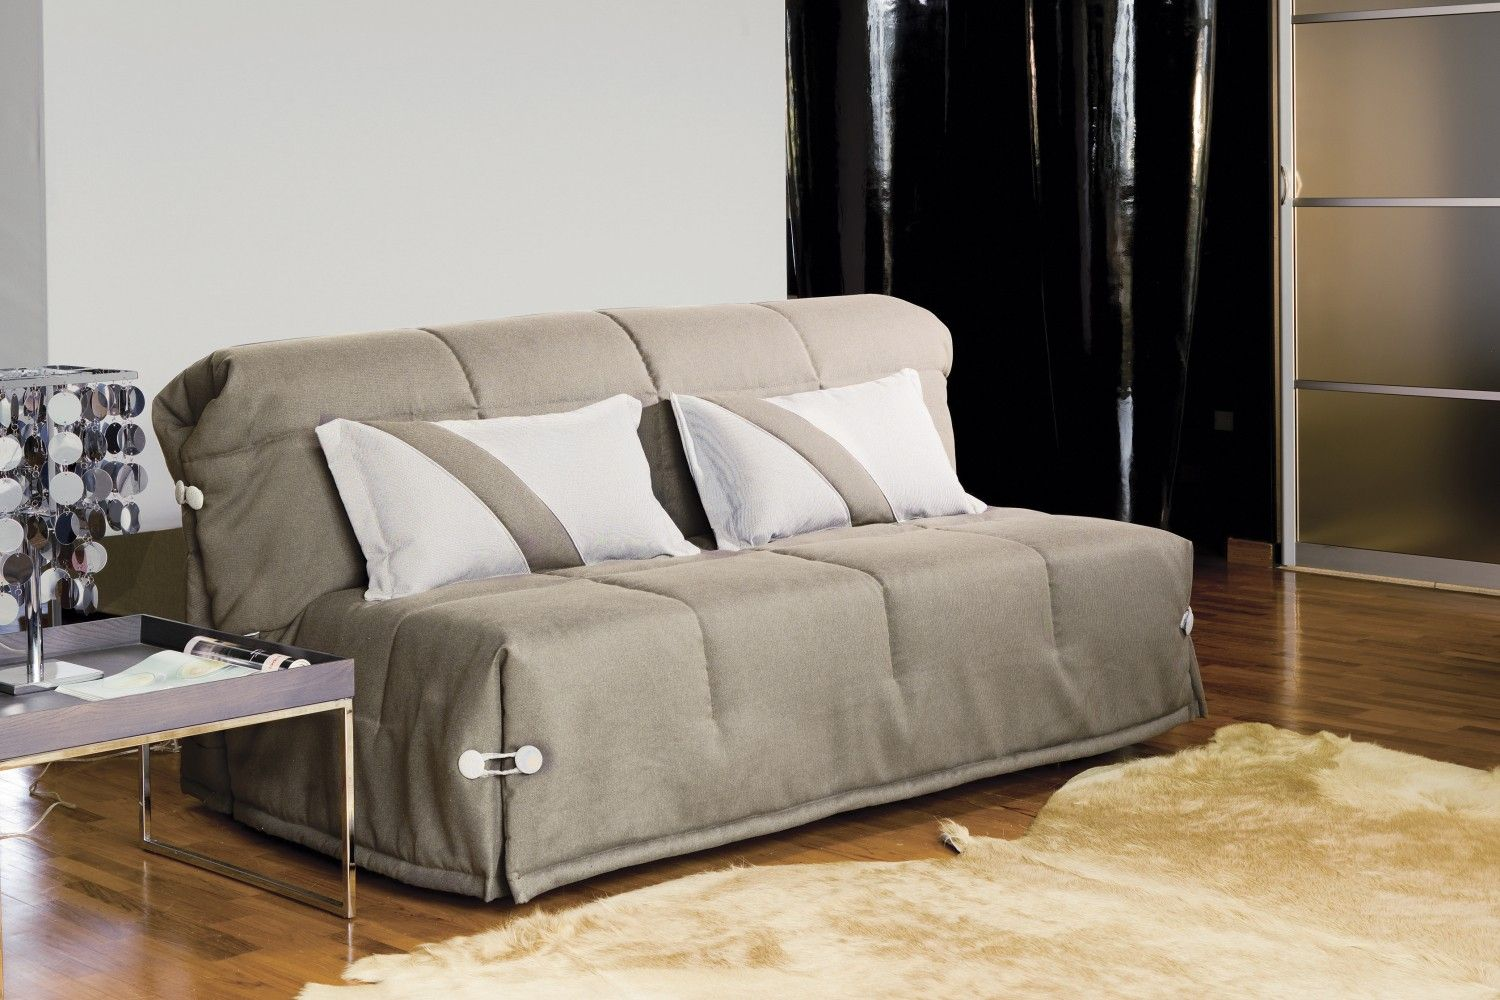 Ginger fold out sofa bed(画像あり)